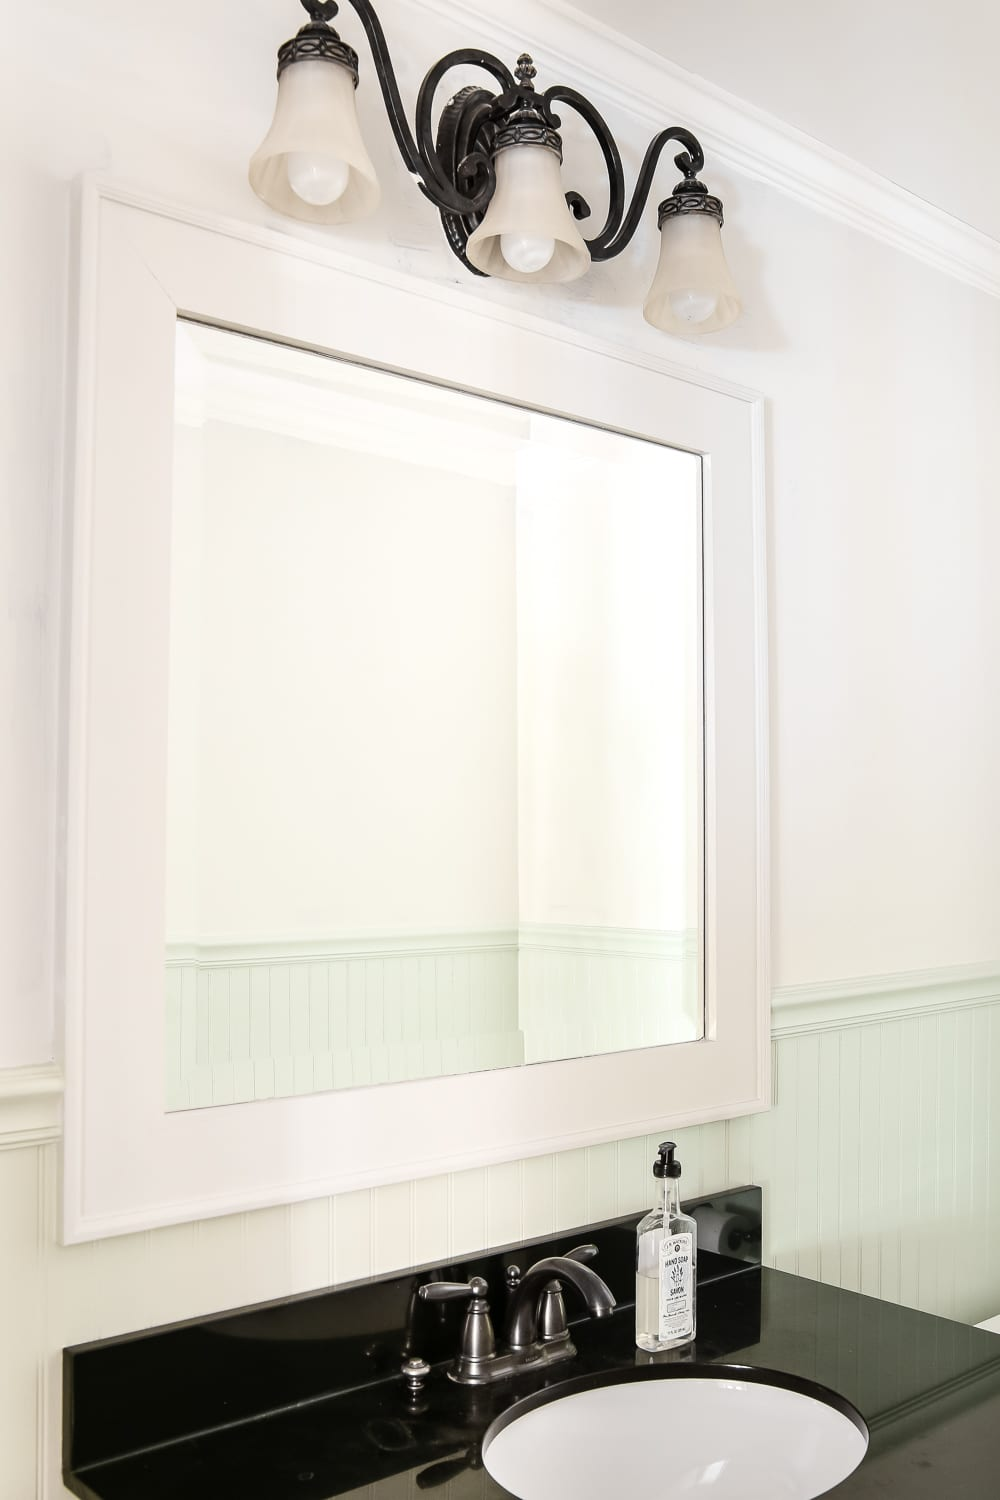 Dry brushed black mirror makeover blesserhouse com a plain white painted bathroom